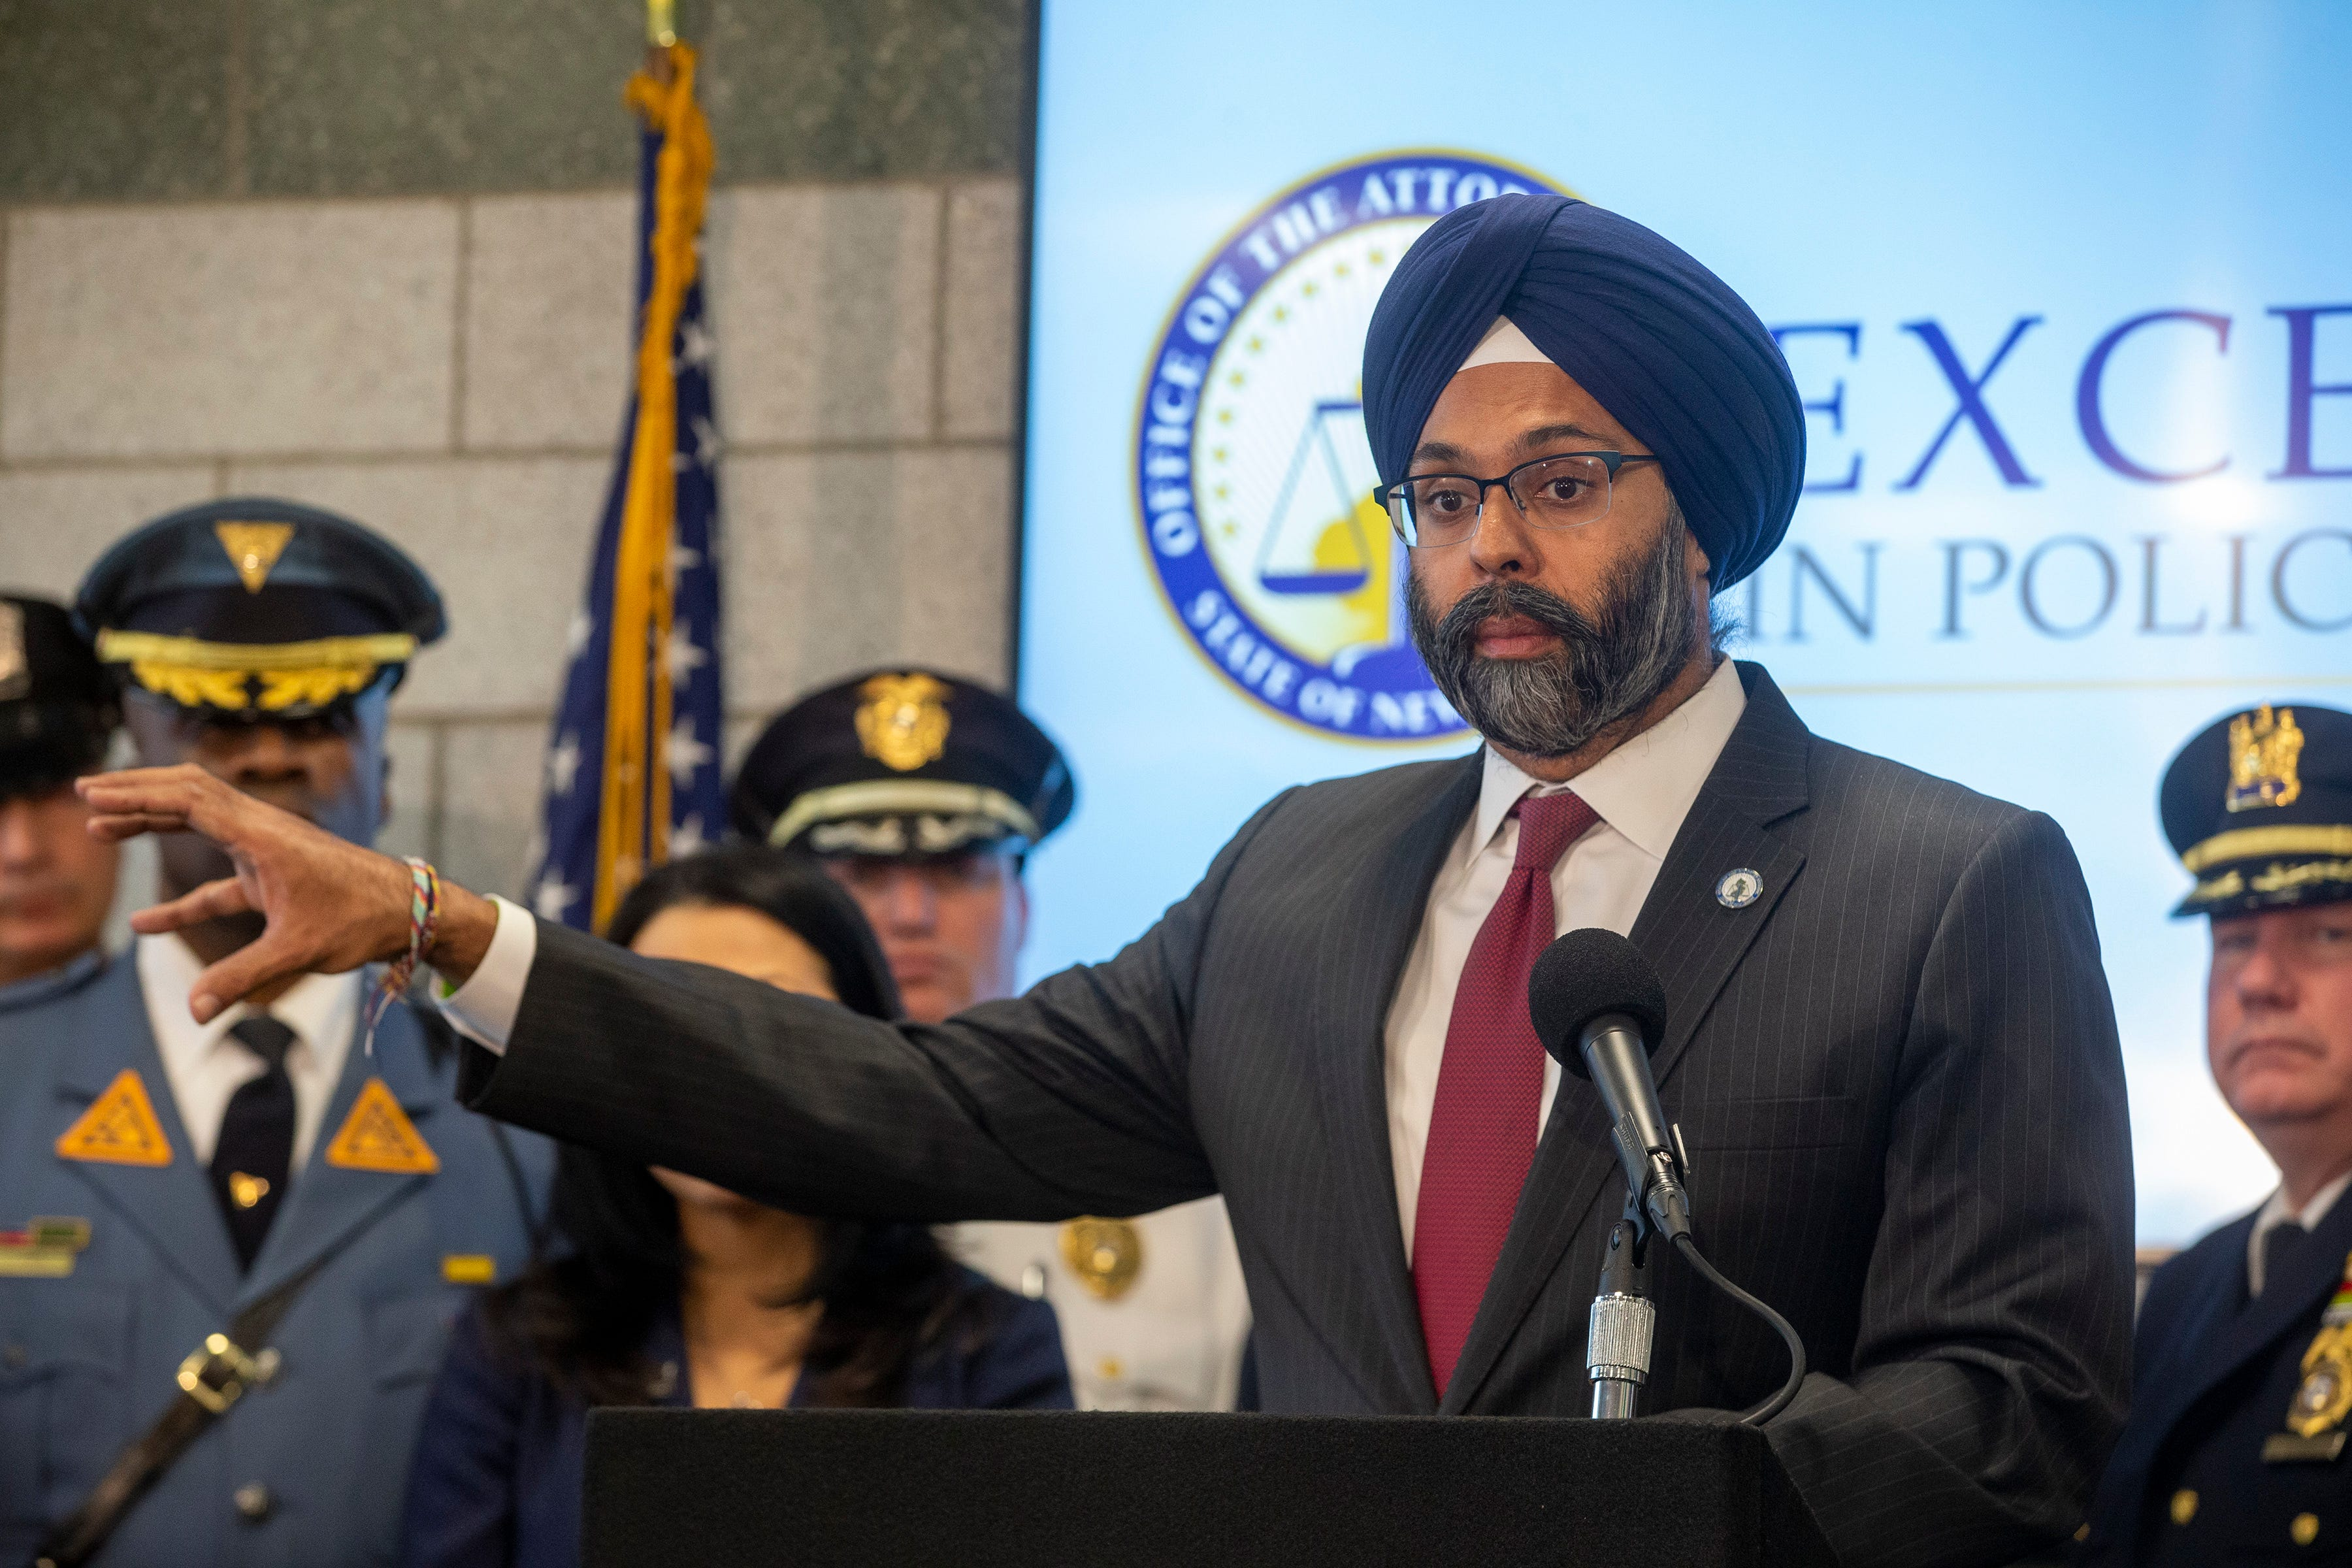 """Attorney General Gurbir S. Grewal announces """"Excellence in Policing"""" initiative to promote professionalism, accountability and transparency in law enforcement during a press conference at the New Jersey State Police Newark Troop D Station in Newark, NJ Wednesday, December 4, 2019."""